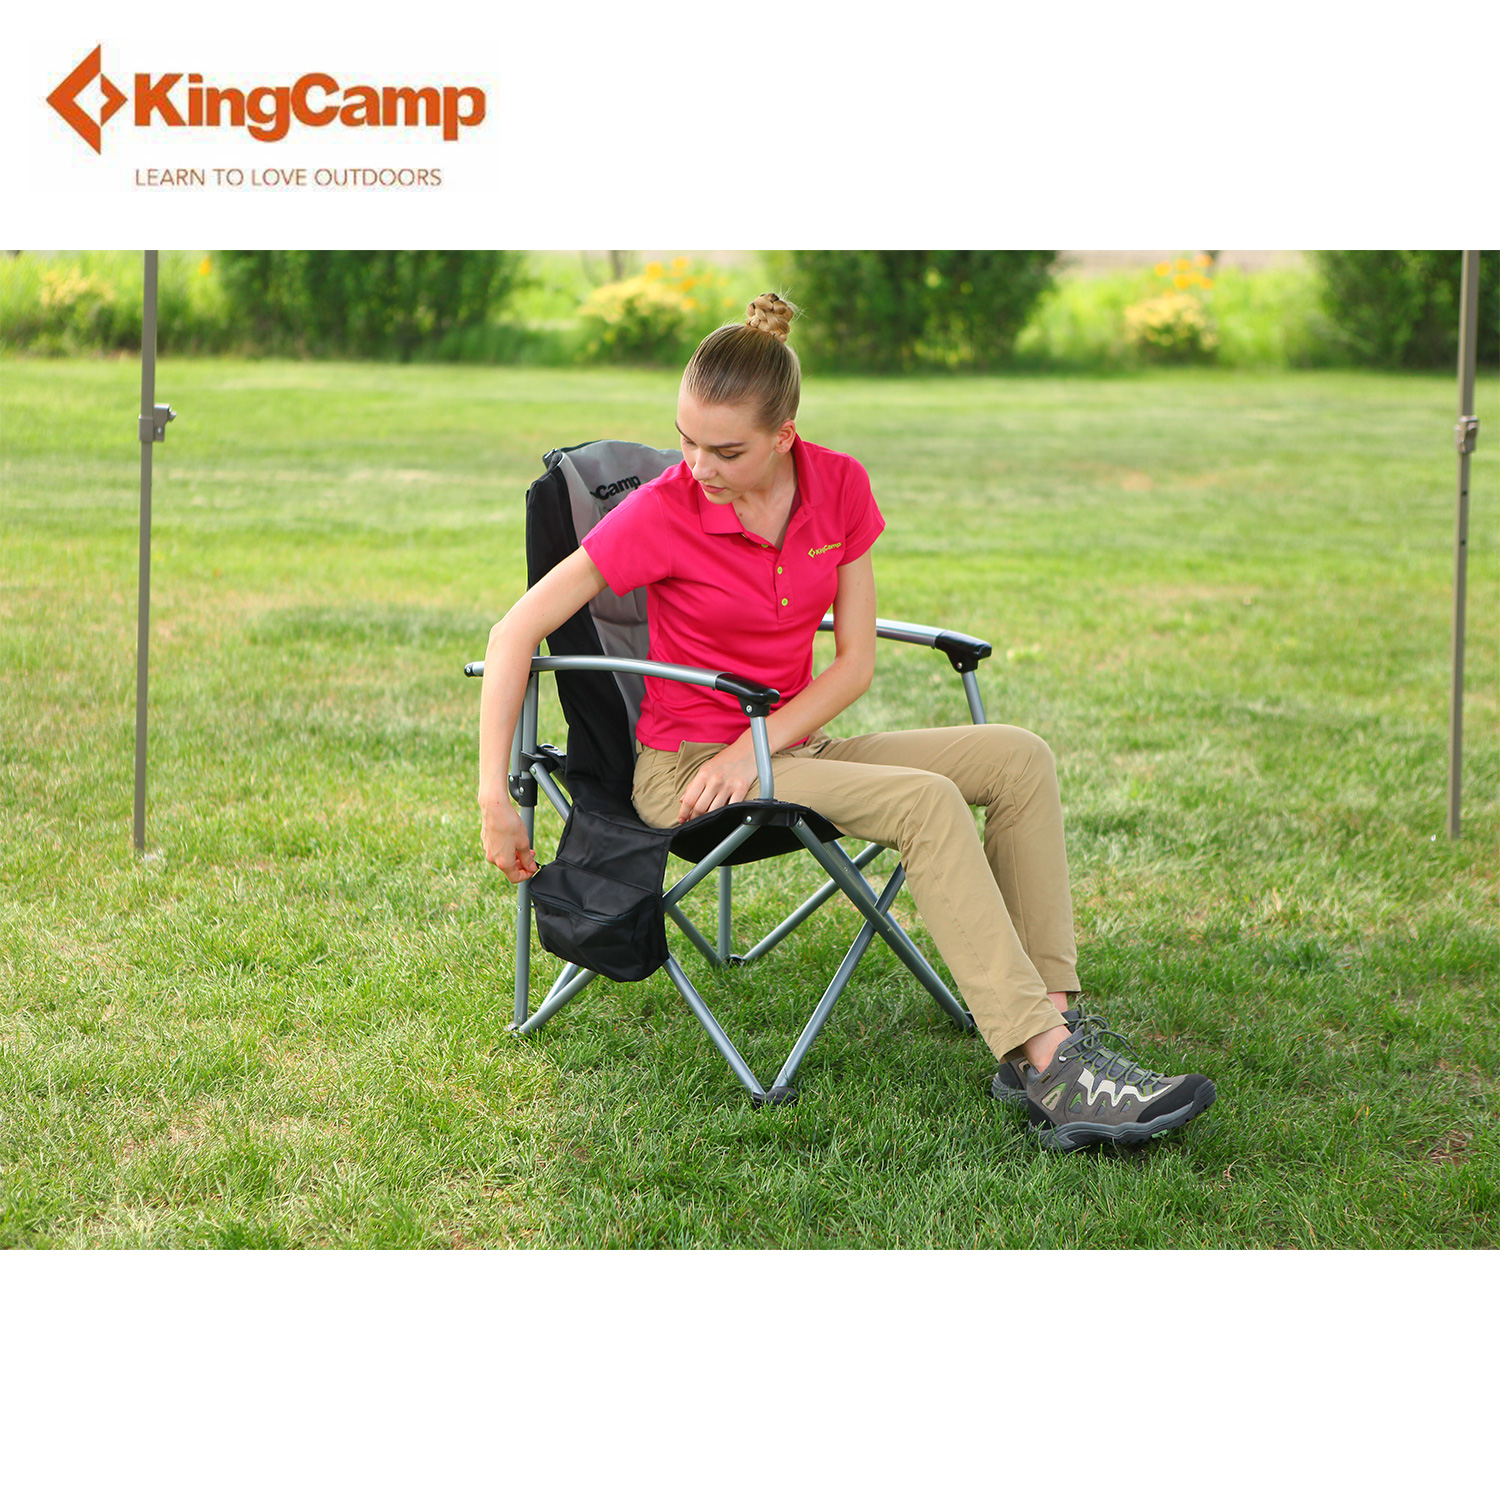 KingCamp Camping Folding Arm Chair Director Portable with Cooler